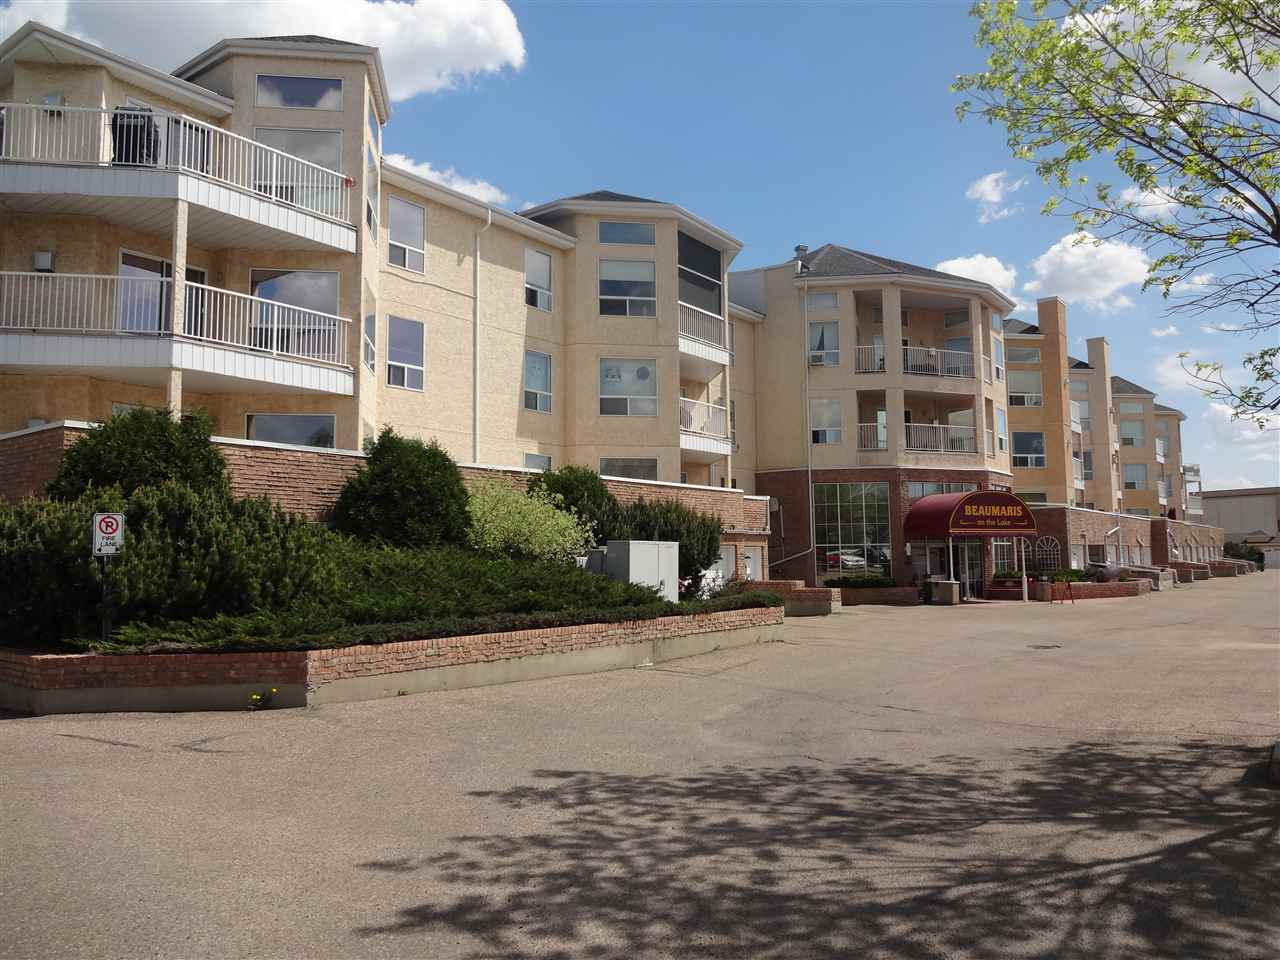 Main Photo: 326 15499 CASTLE DOWNS Road in Edmonton: Zone 27 Condo for sale : MLS(r) # E4057526